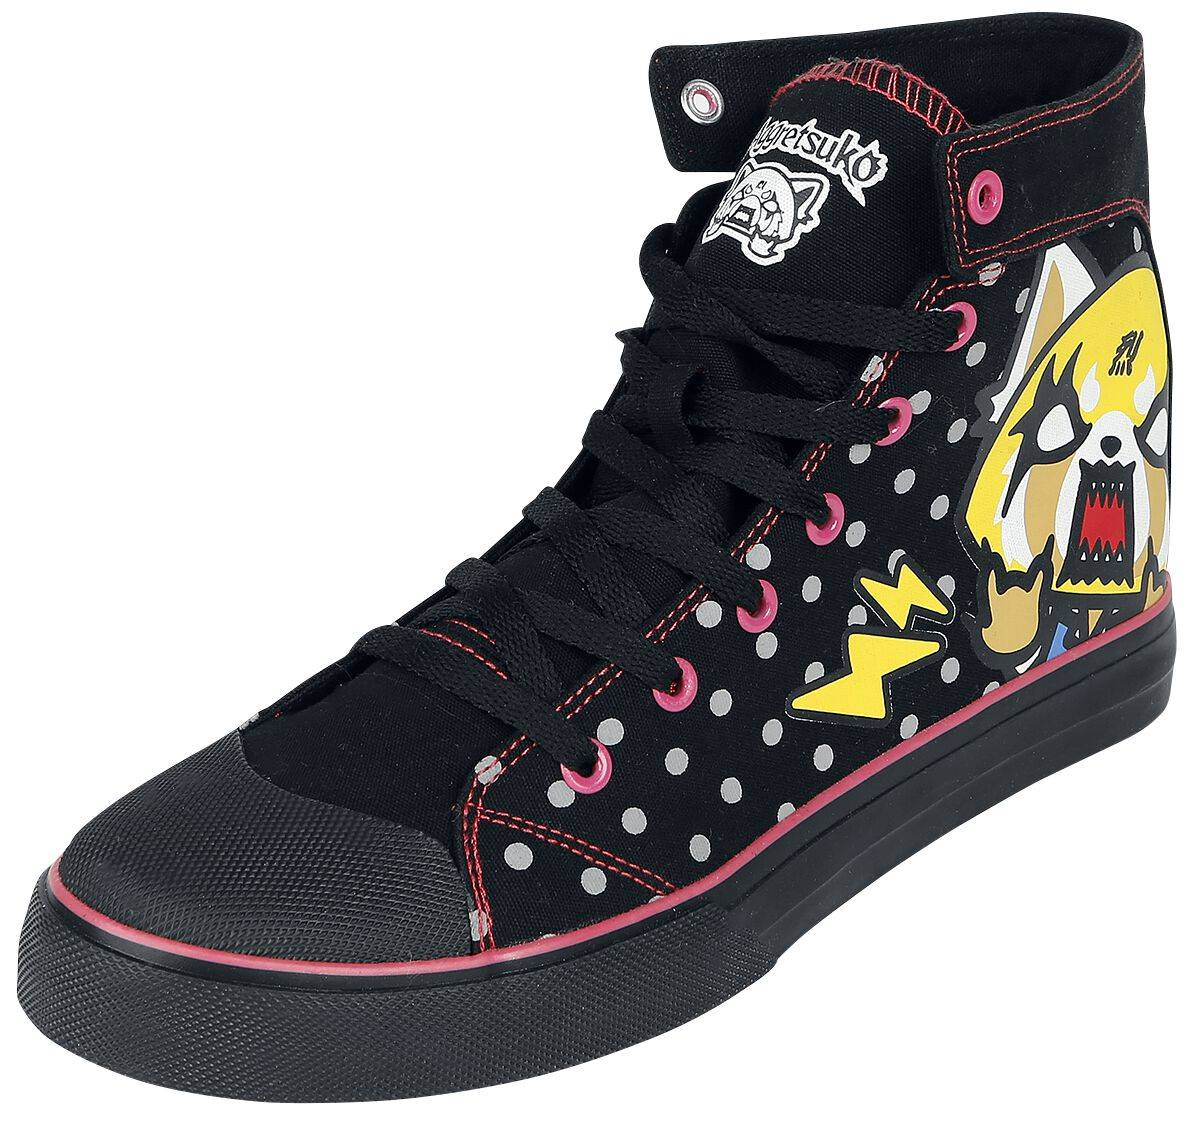 M365682 Aggretsuko Day Night Scarpe sportive nero